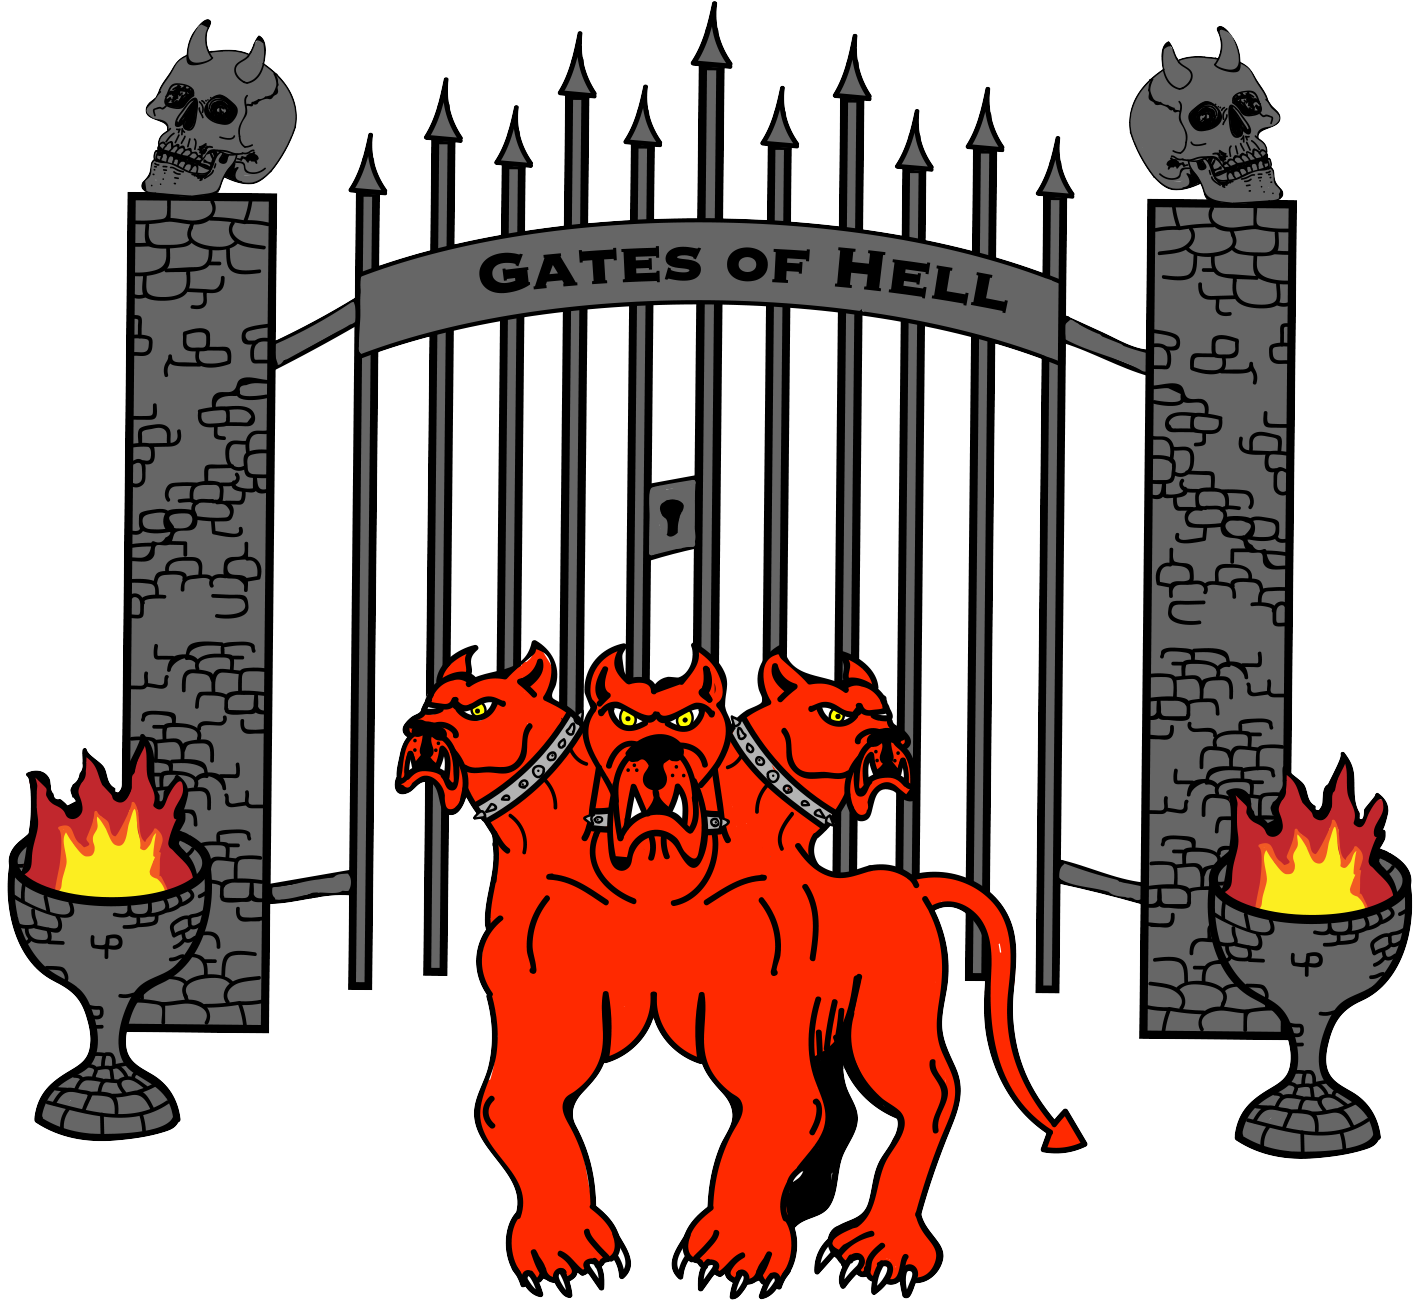 Gates of Hell & Cerberus combined